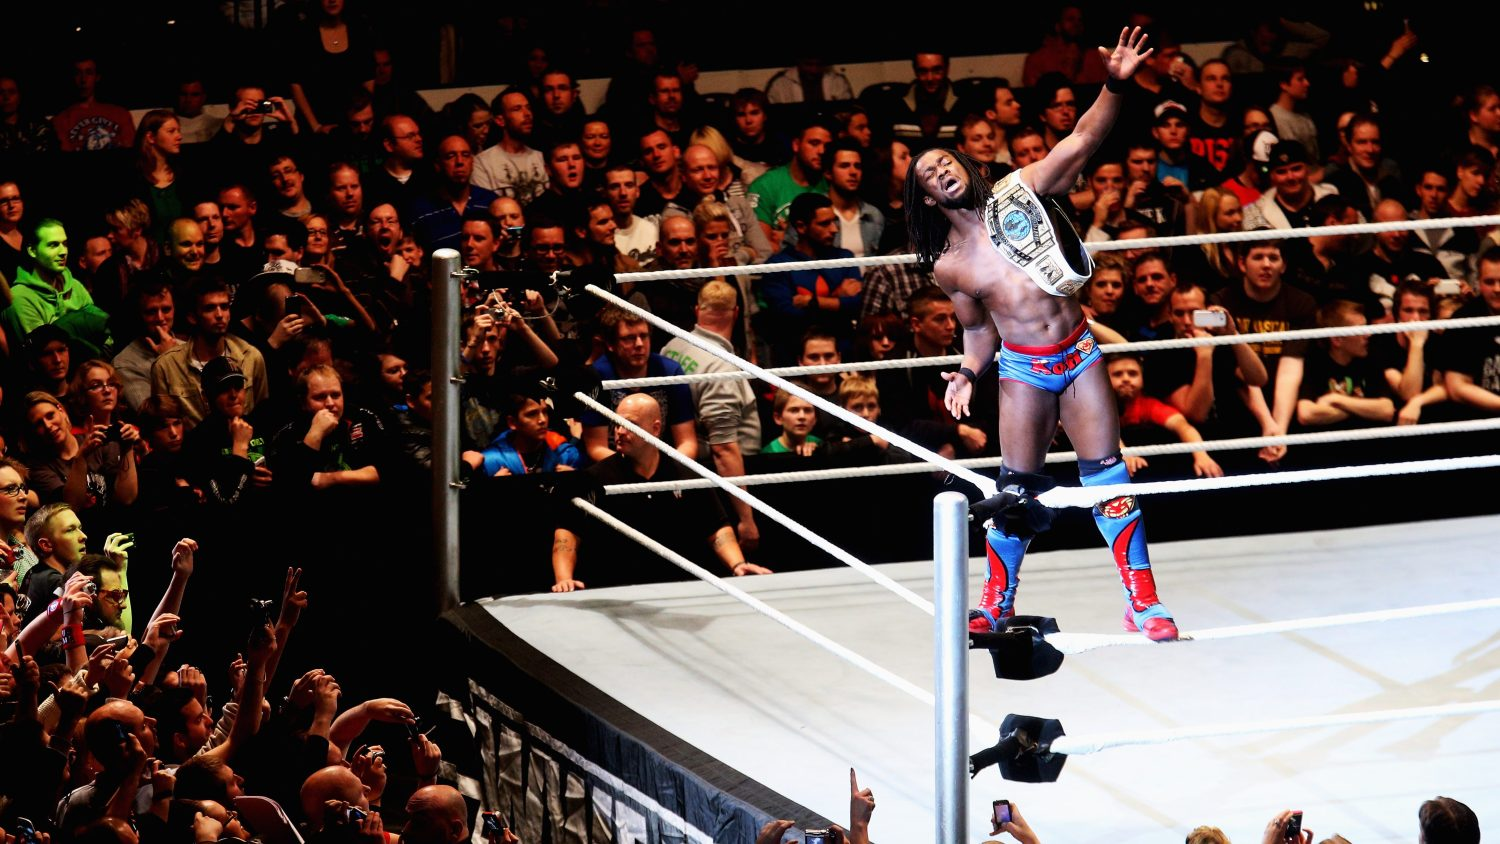 WWE Wrestling – World Tour 2012